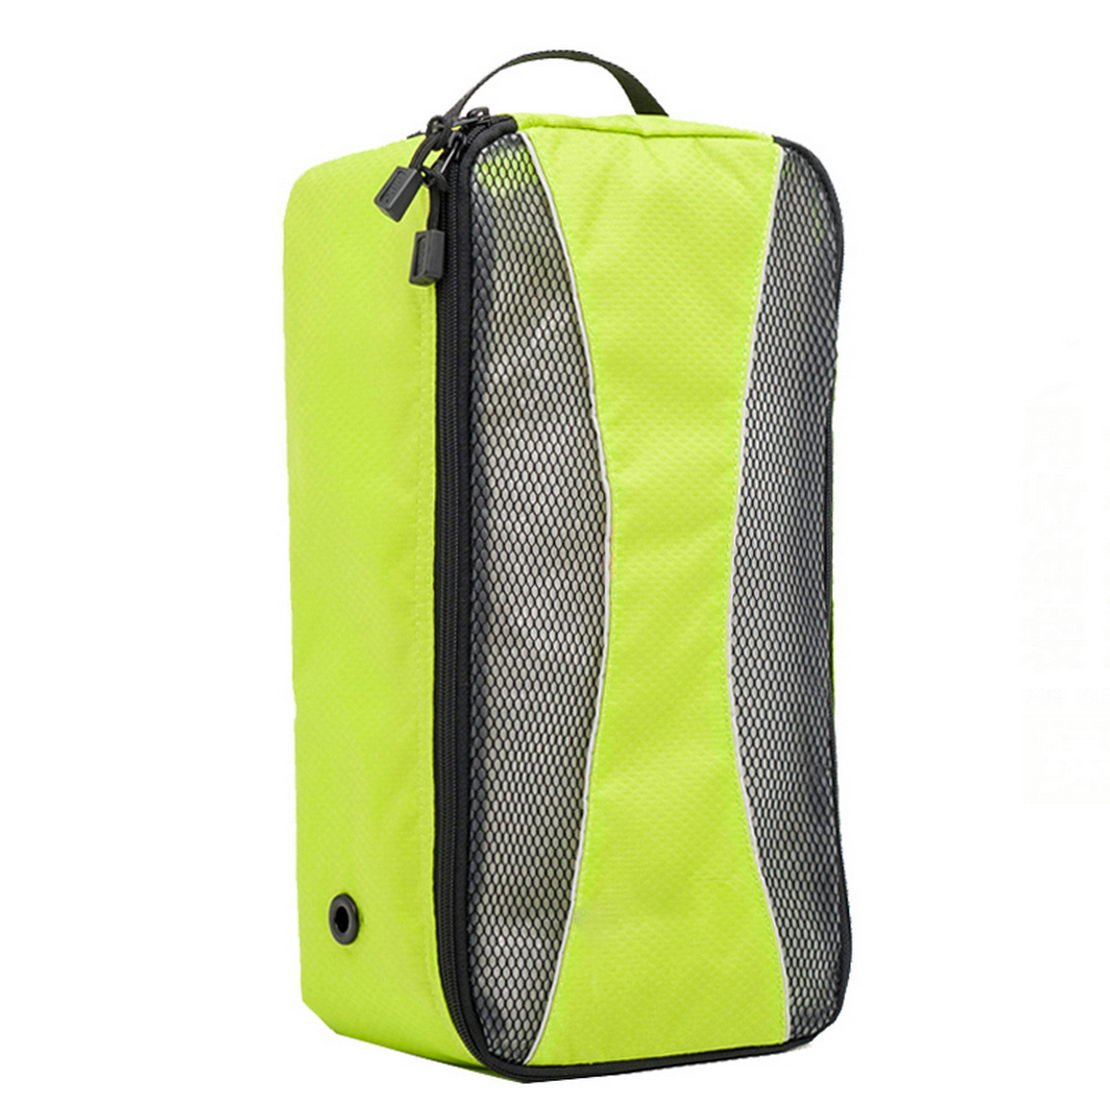 d3c801d7eed1 Amazon.com: donfohy Travel wash bag storage organize bags waterproof ...